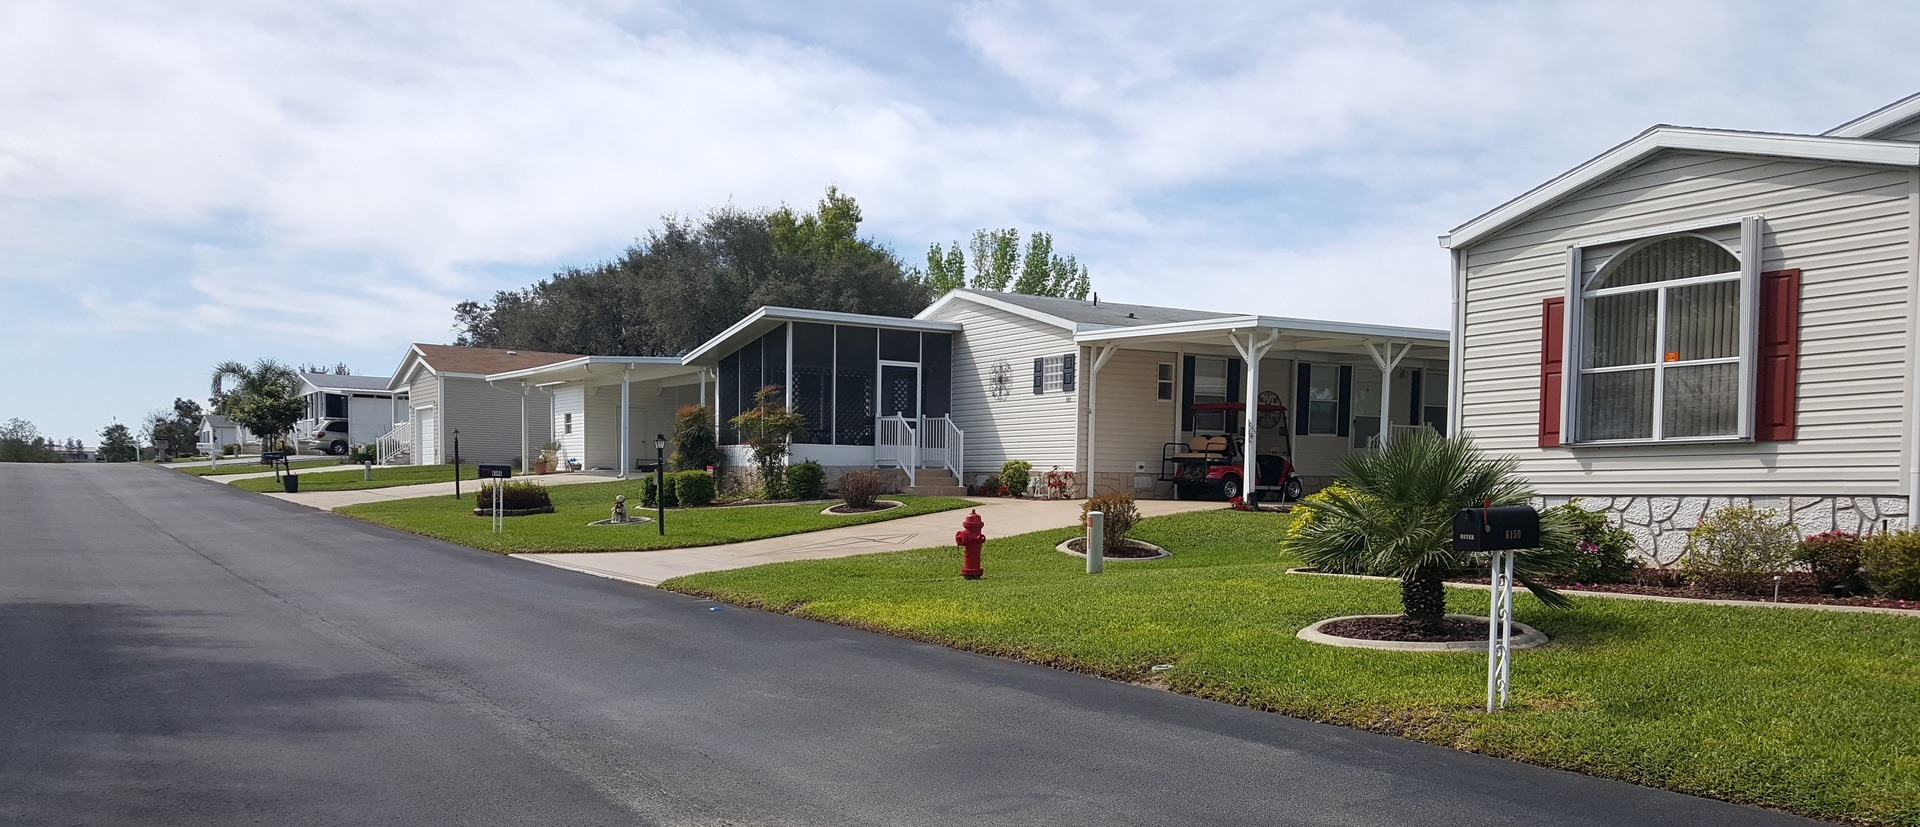 Woodlands At Church Lake Manufactured Home Community in Groveland, FL